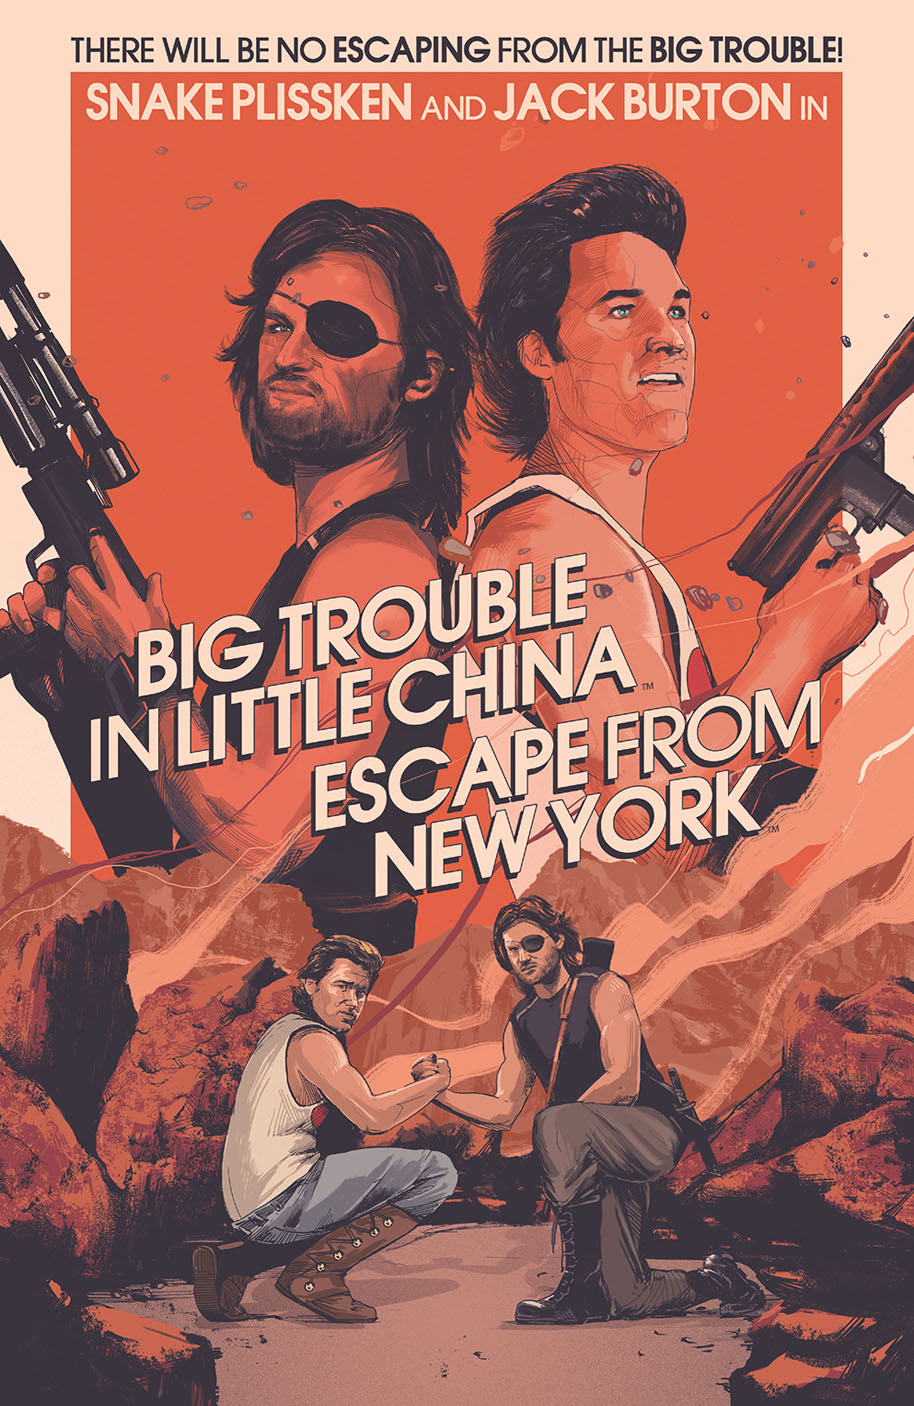 Big Trouble Escape NewYork 001 movie incentive cover